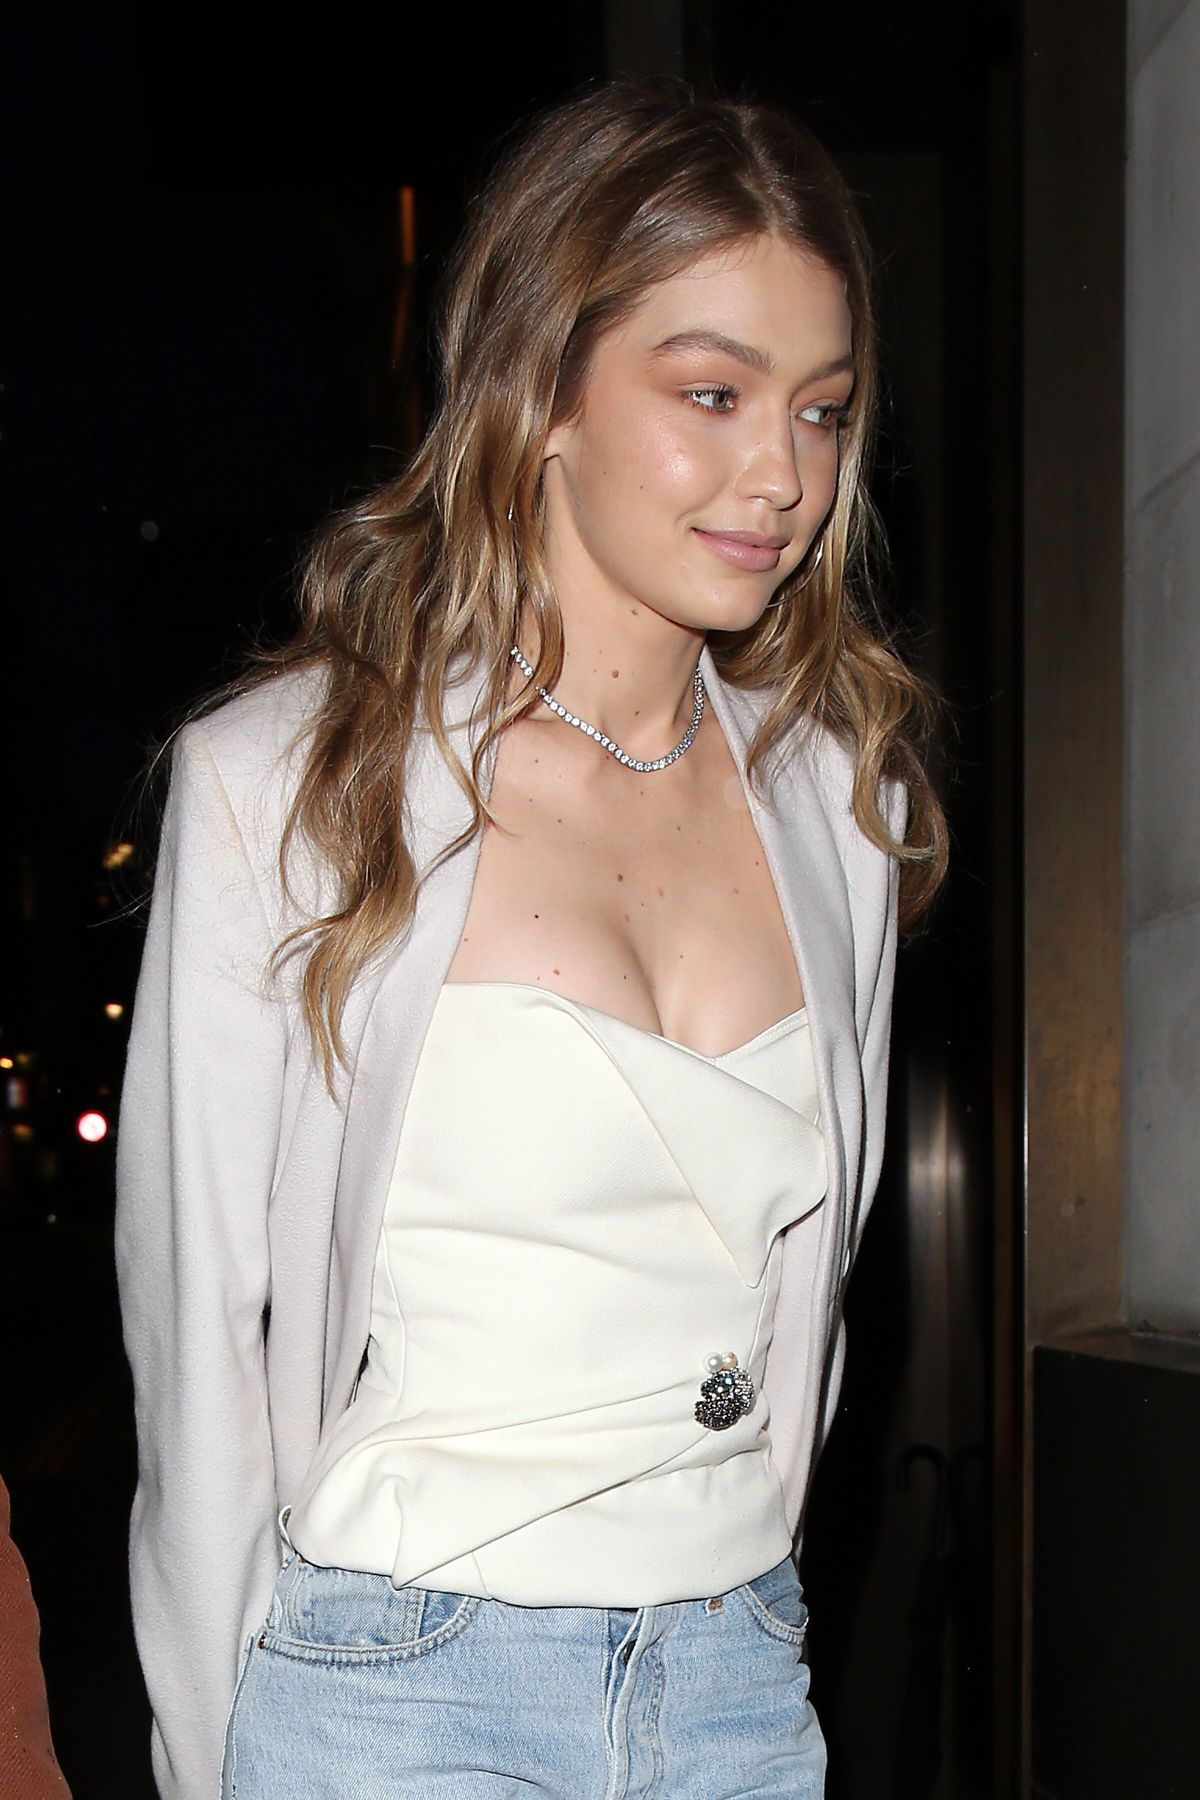 57e826123d6 Gigi Hadid at Gigi Hotel Pop-up Venue for Her Gigi x Maybelline VIP Party  in London (7.11.2017)